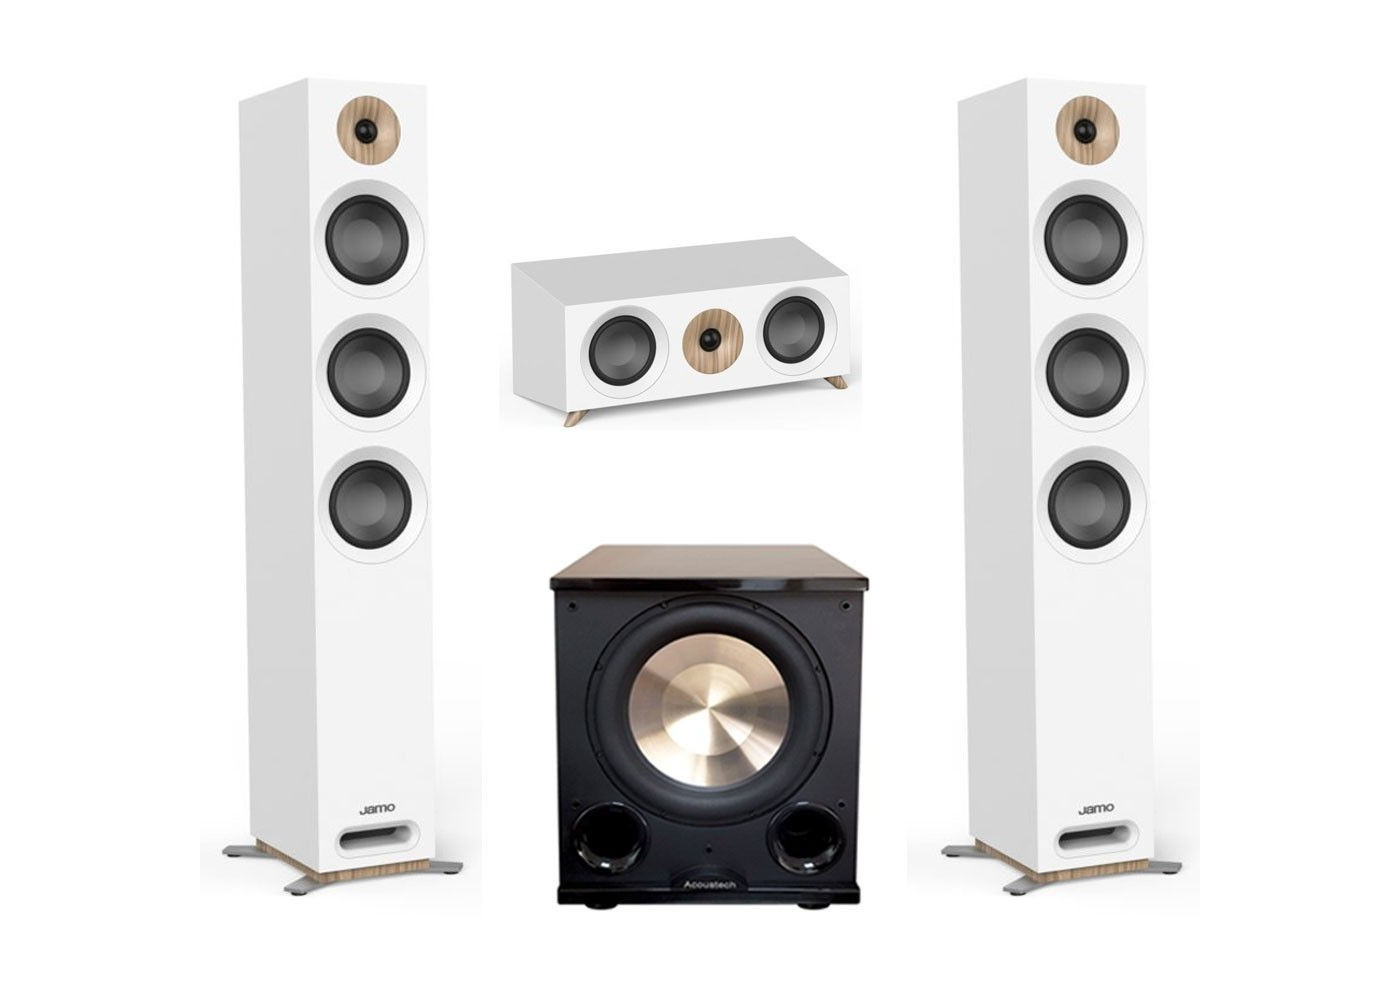 Jamo Studio Series 3 1 White Home Theater System with S 809 Towers and  PL-200II subwoofer